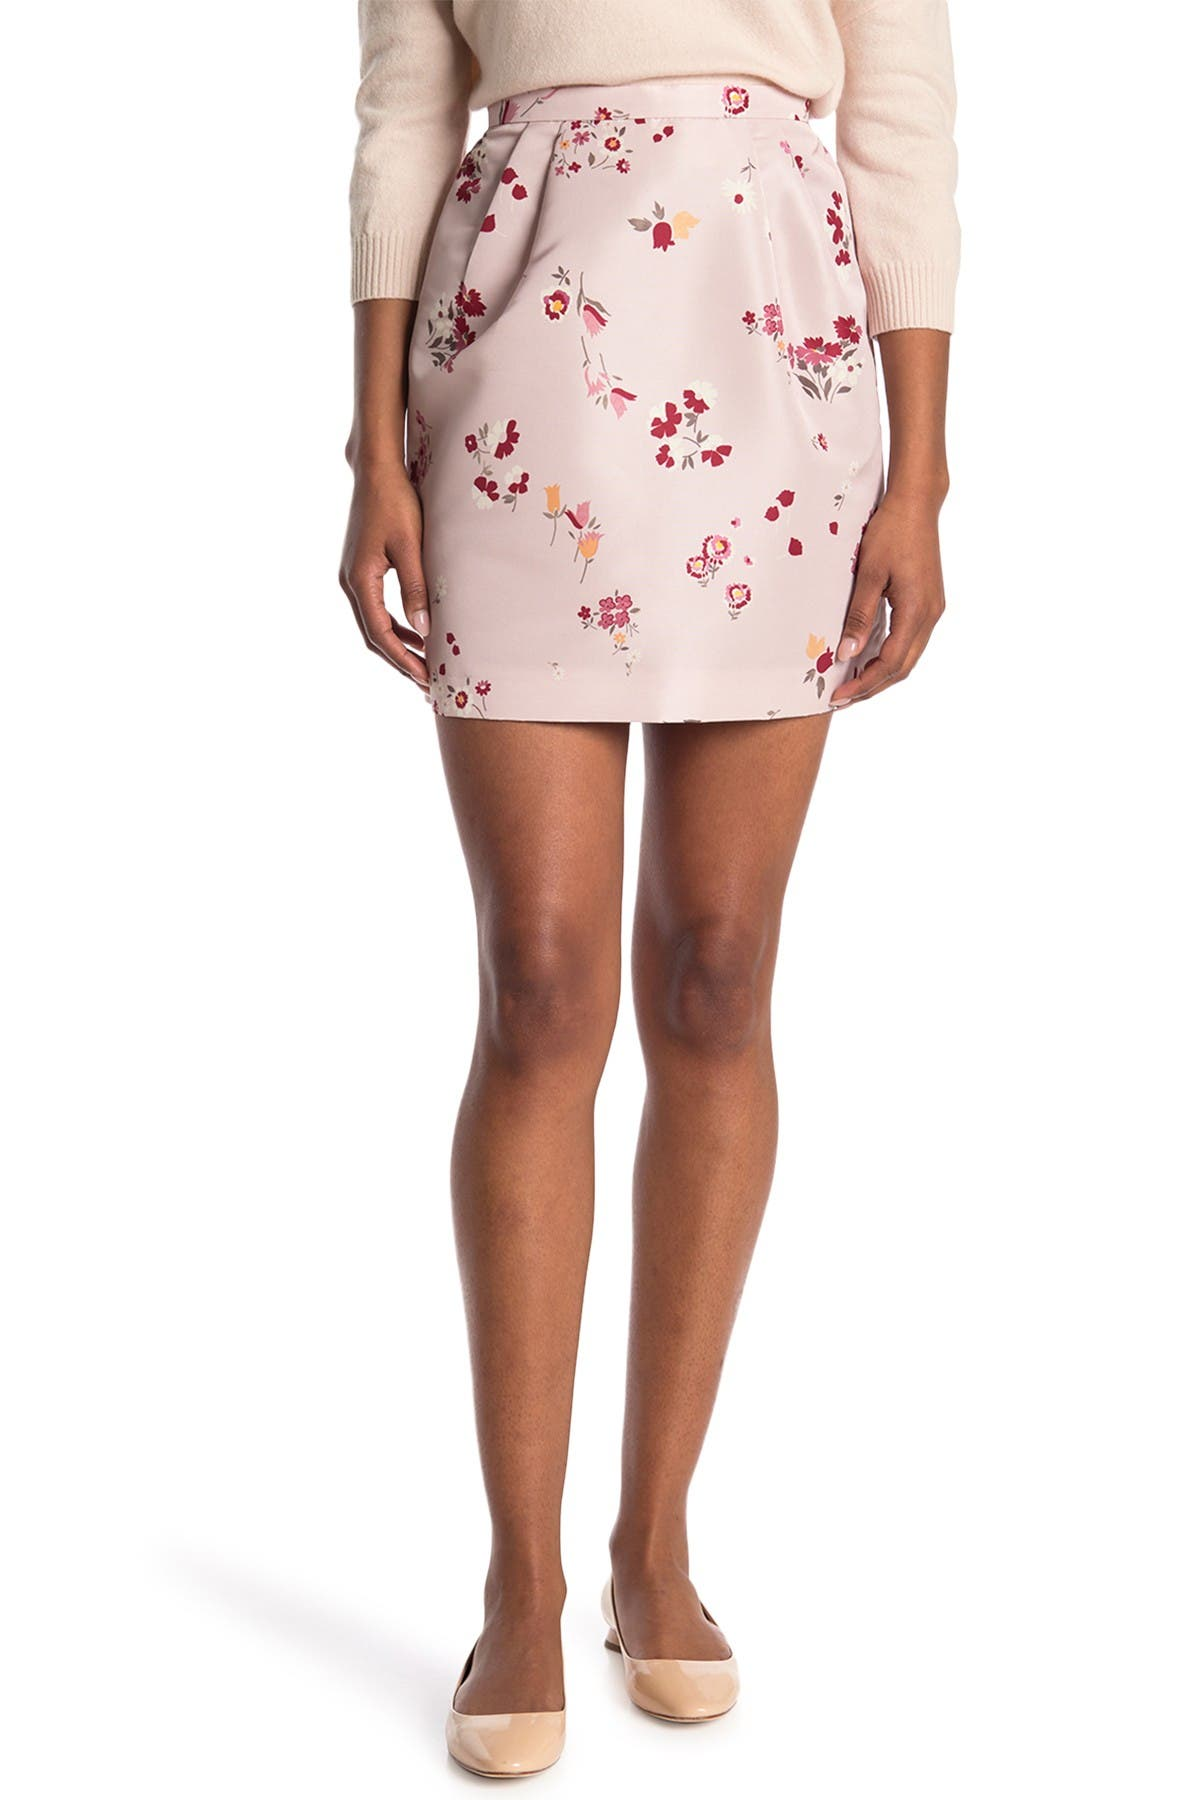 Image of RED Valentino Floral Print Skirt